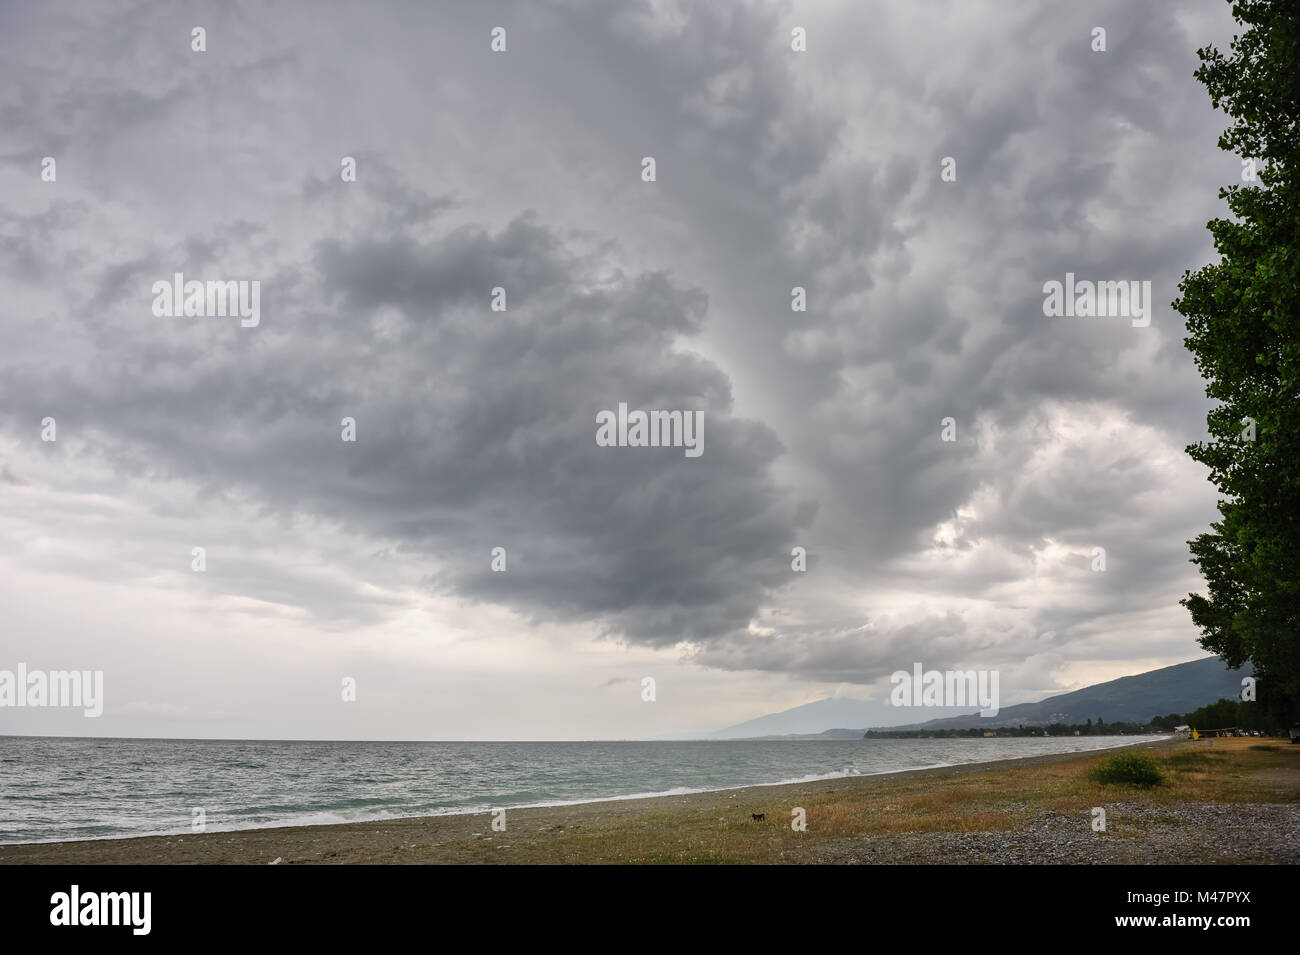 before the rainstorm - Stock Image